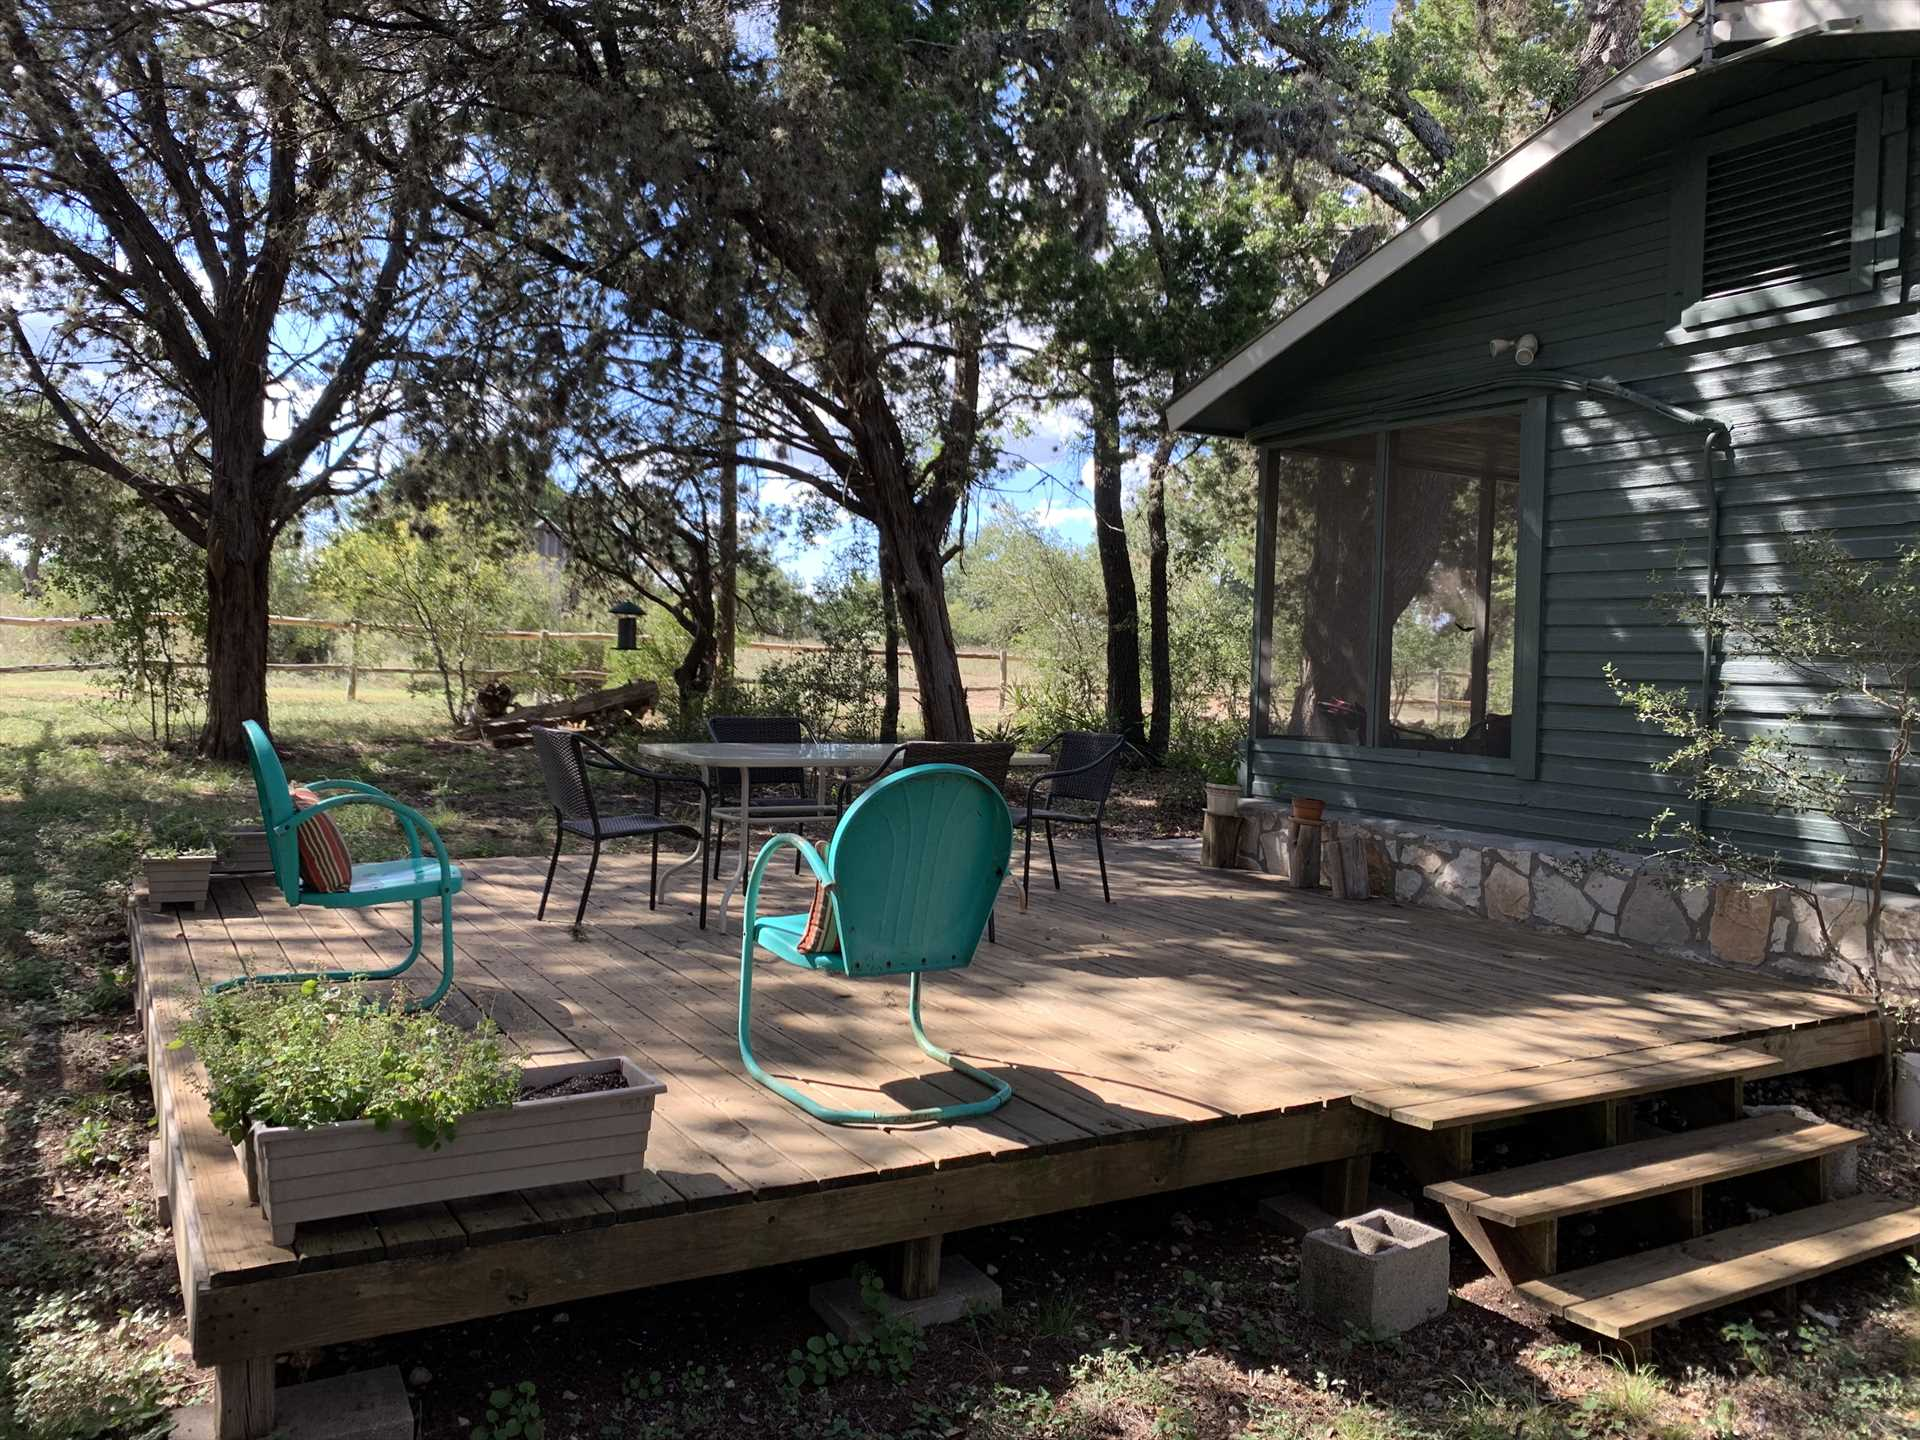 The shaded deck is a paradise for both nature lovers and amateur astronomers!